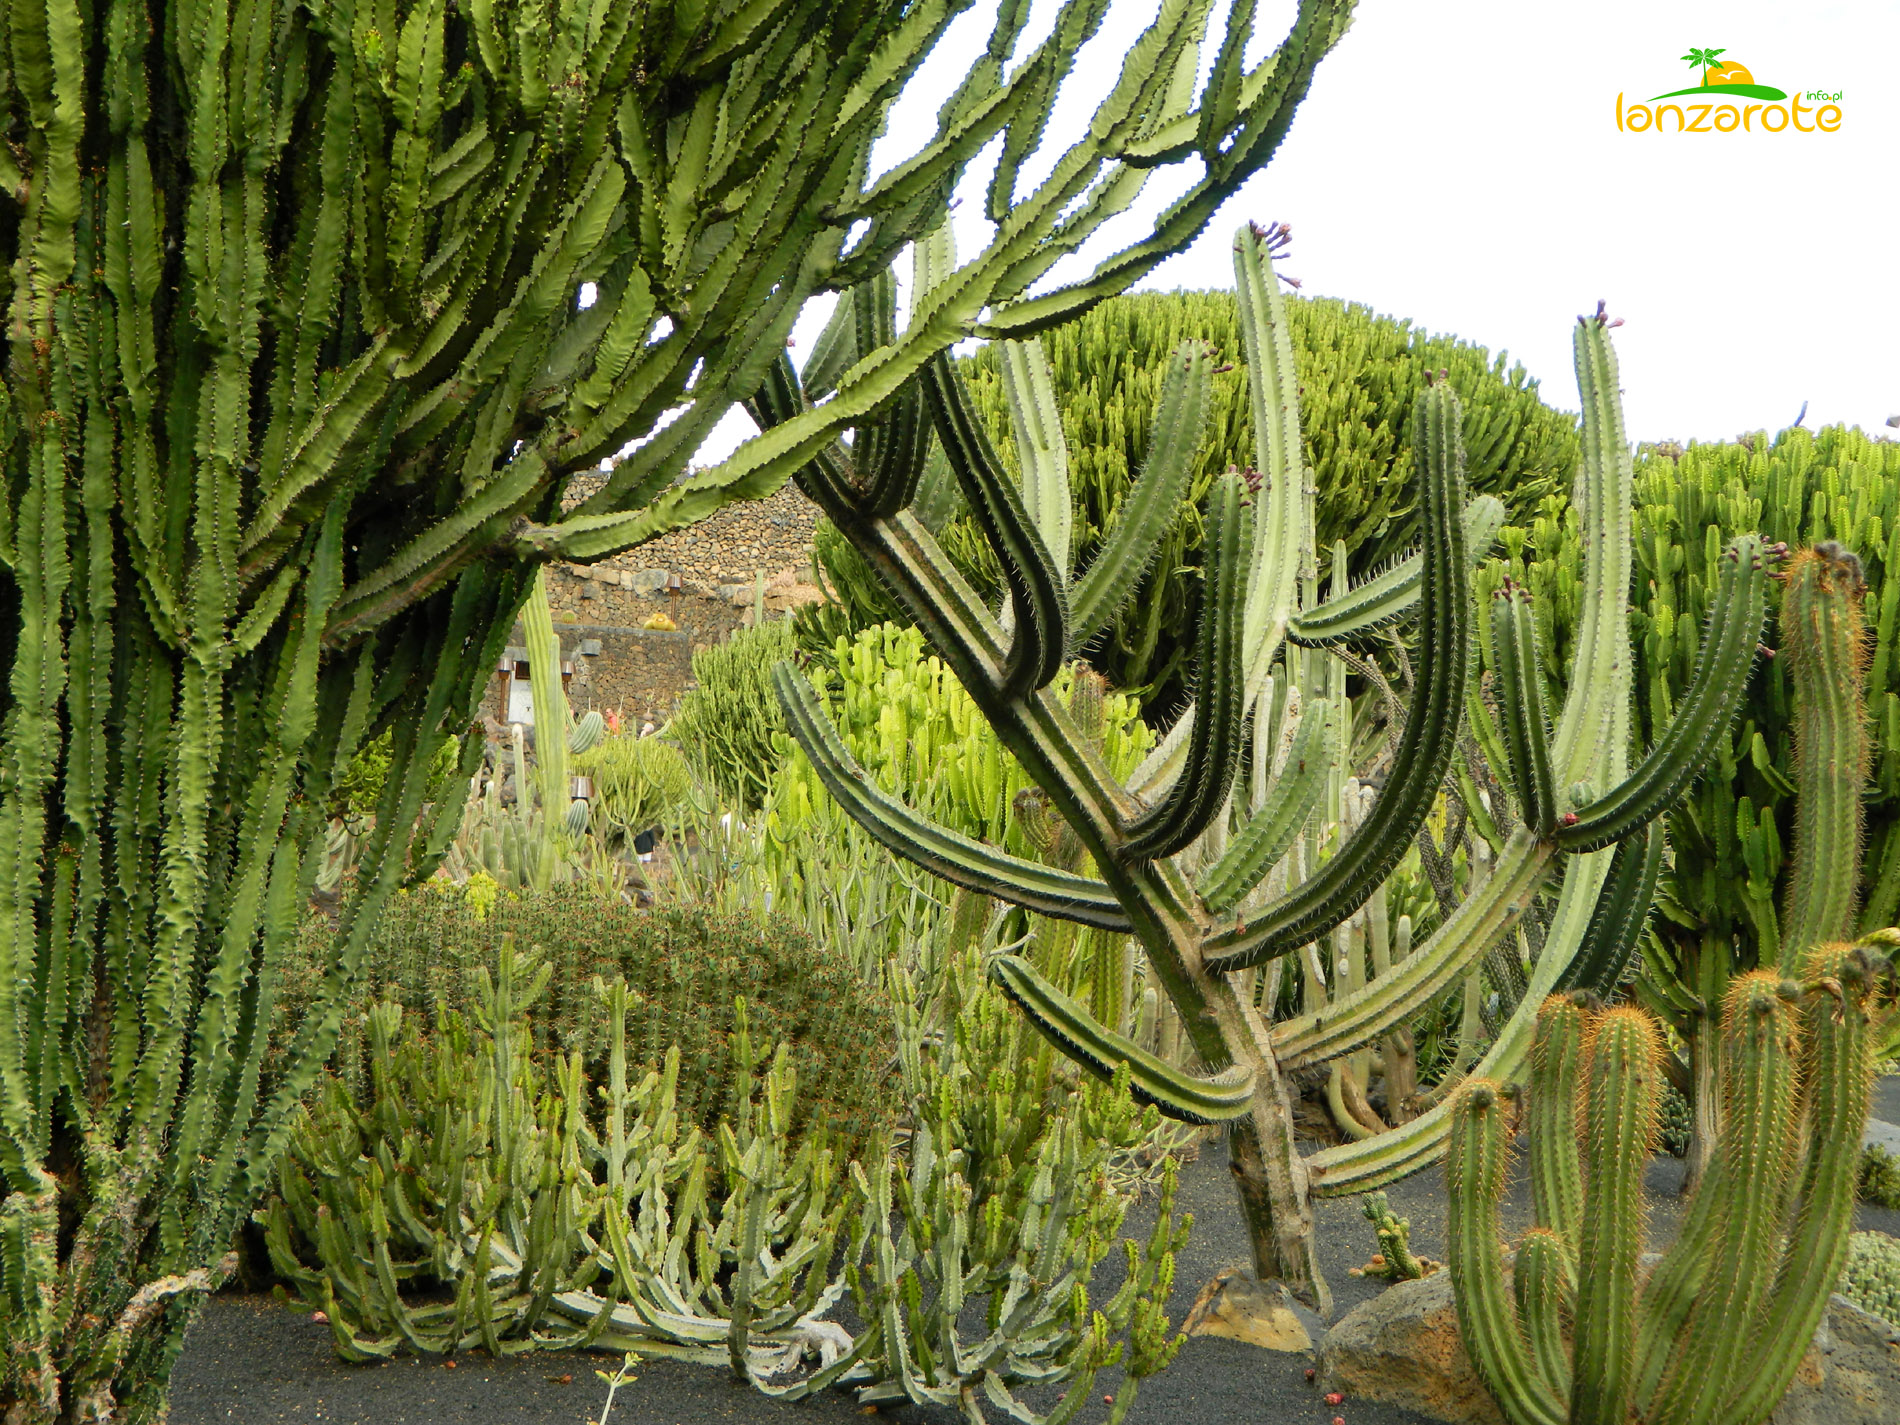 jardin de cactus lanzarote informacje o wyspie. Black Bedroom Furniture Sets. Home Design Ideas